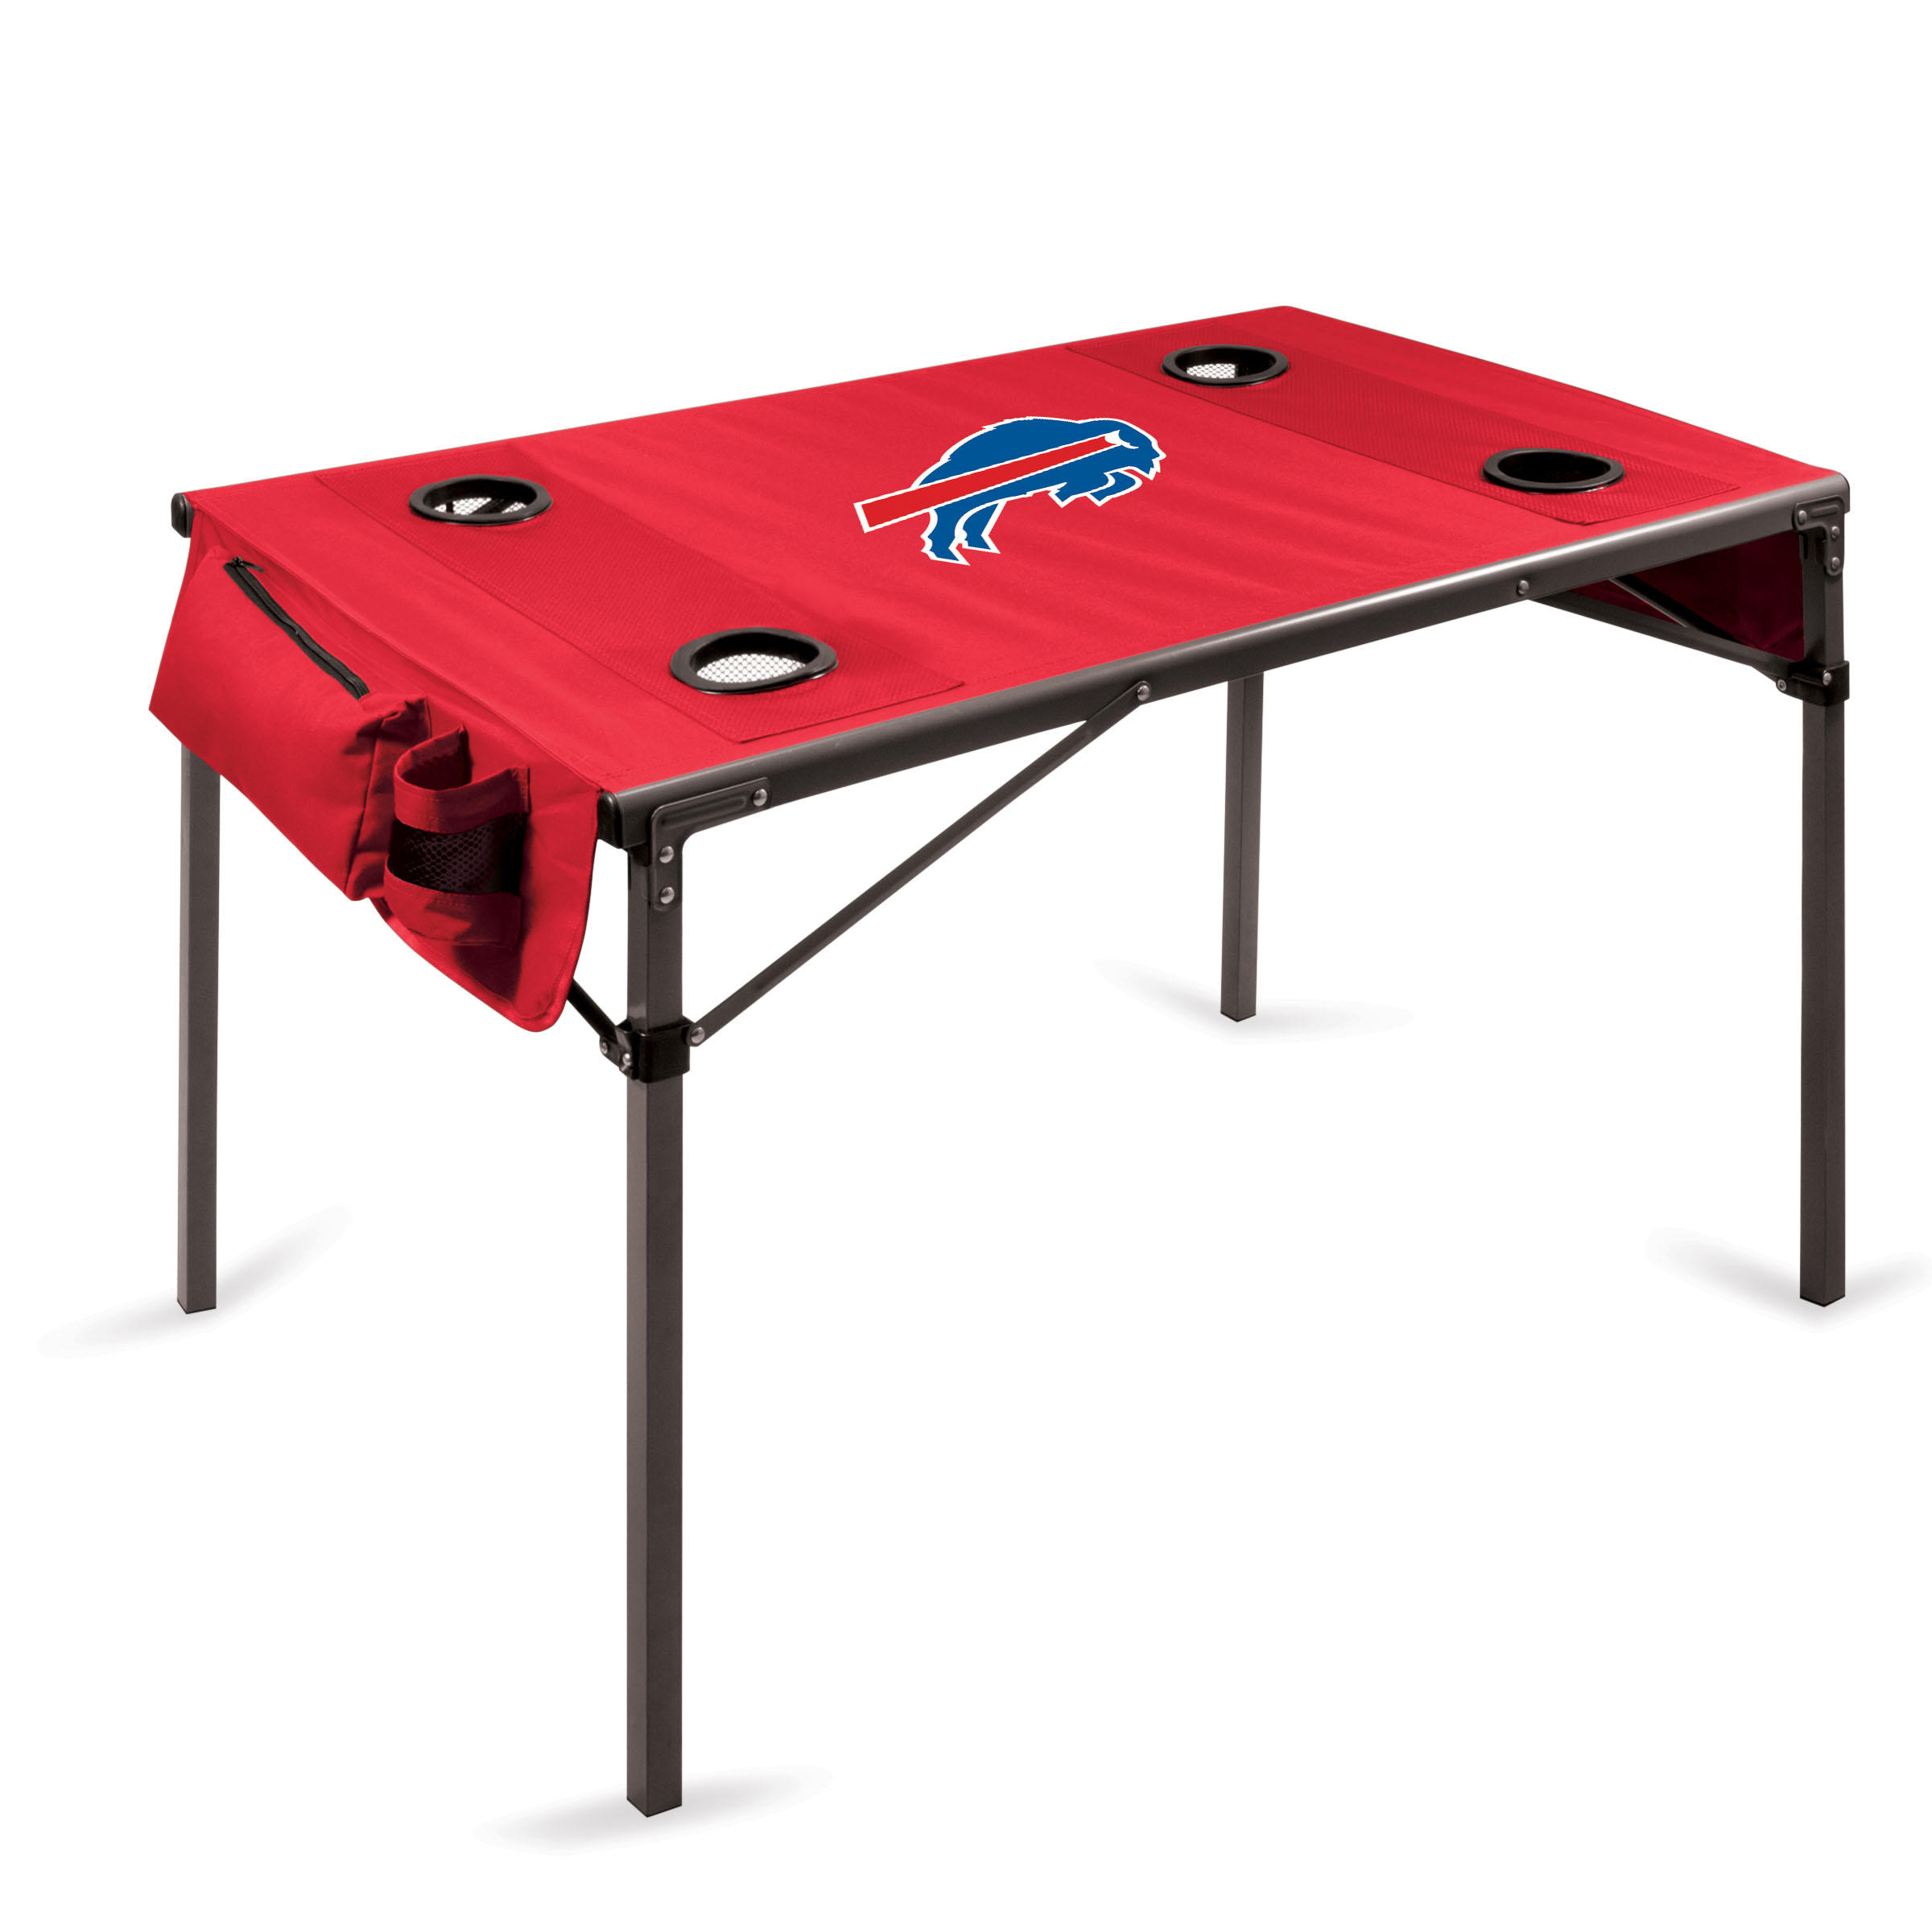 Picnic Time Nfl Travel Table Buffalo Bills